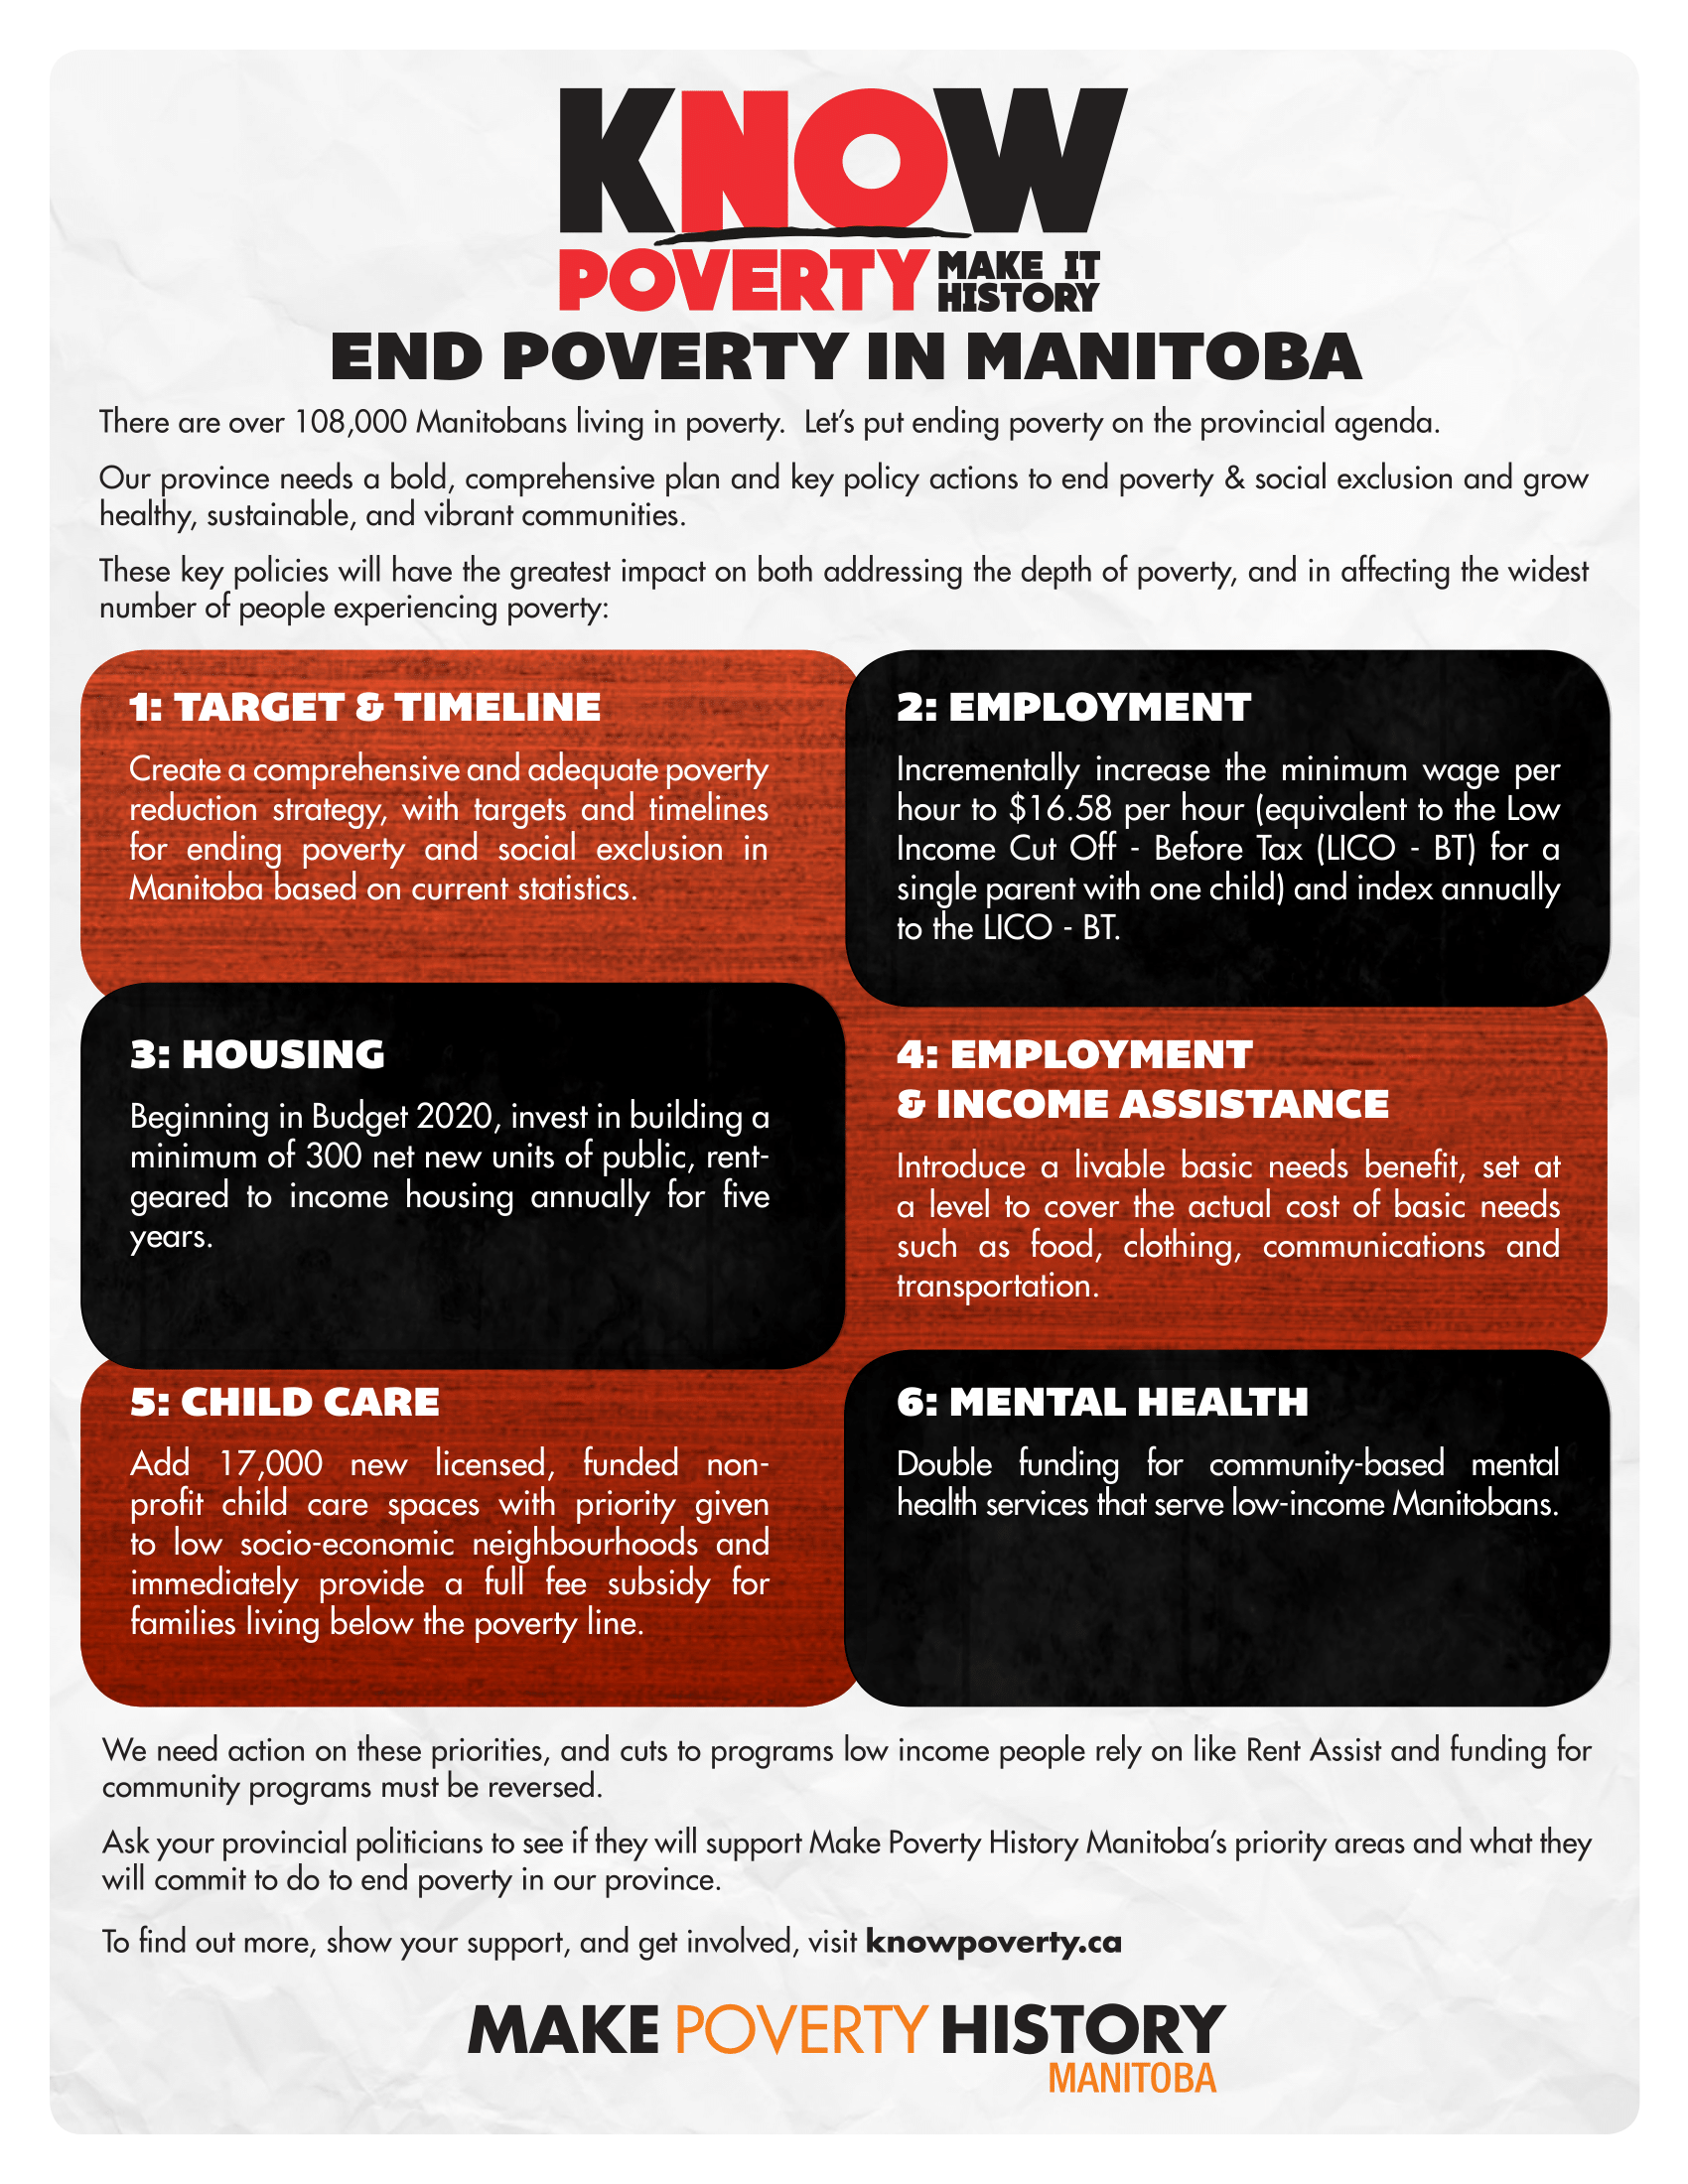 MPHM 2019 - kNOw Poverty Policy Priorities